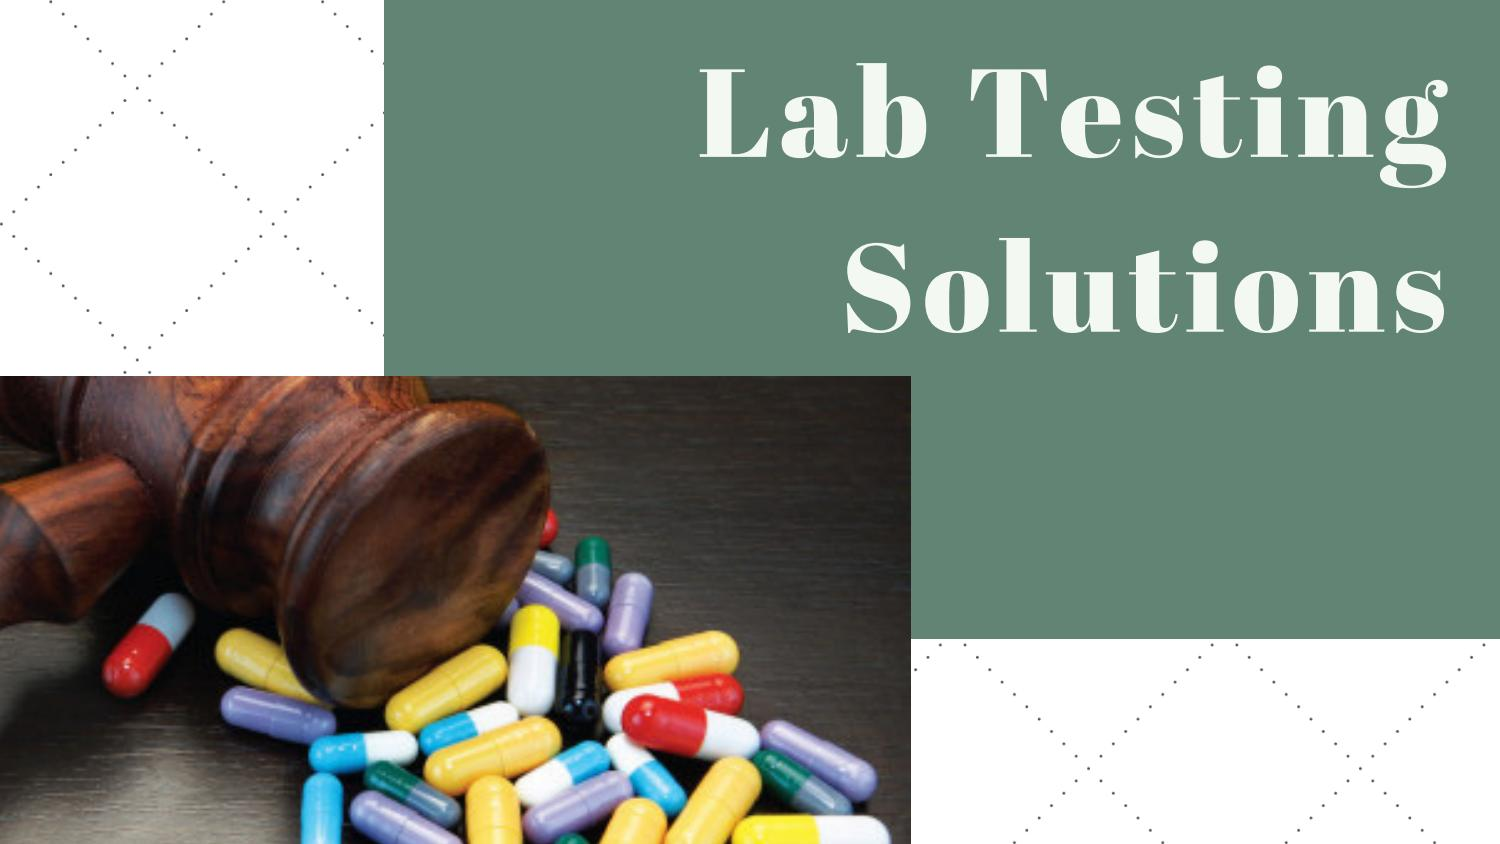 Drug Testing and Screening Service by Lab Testing Solutions